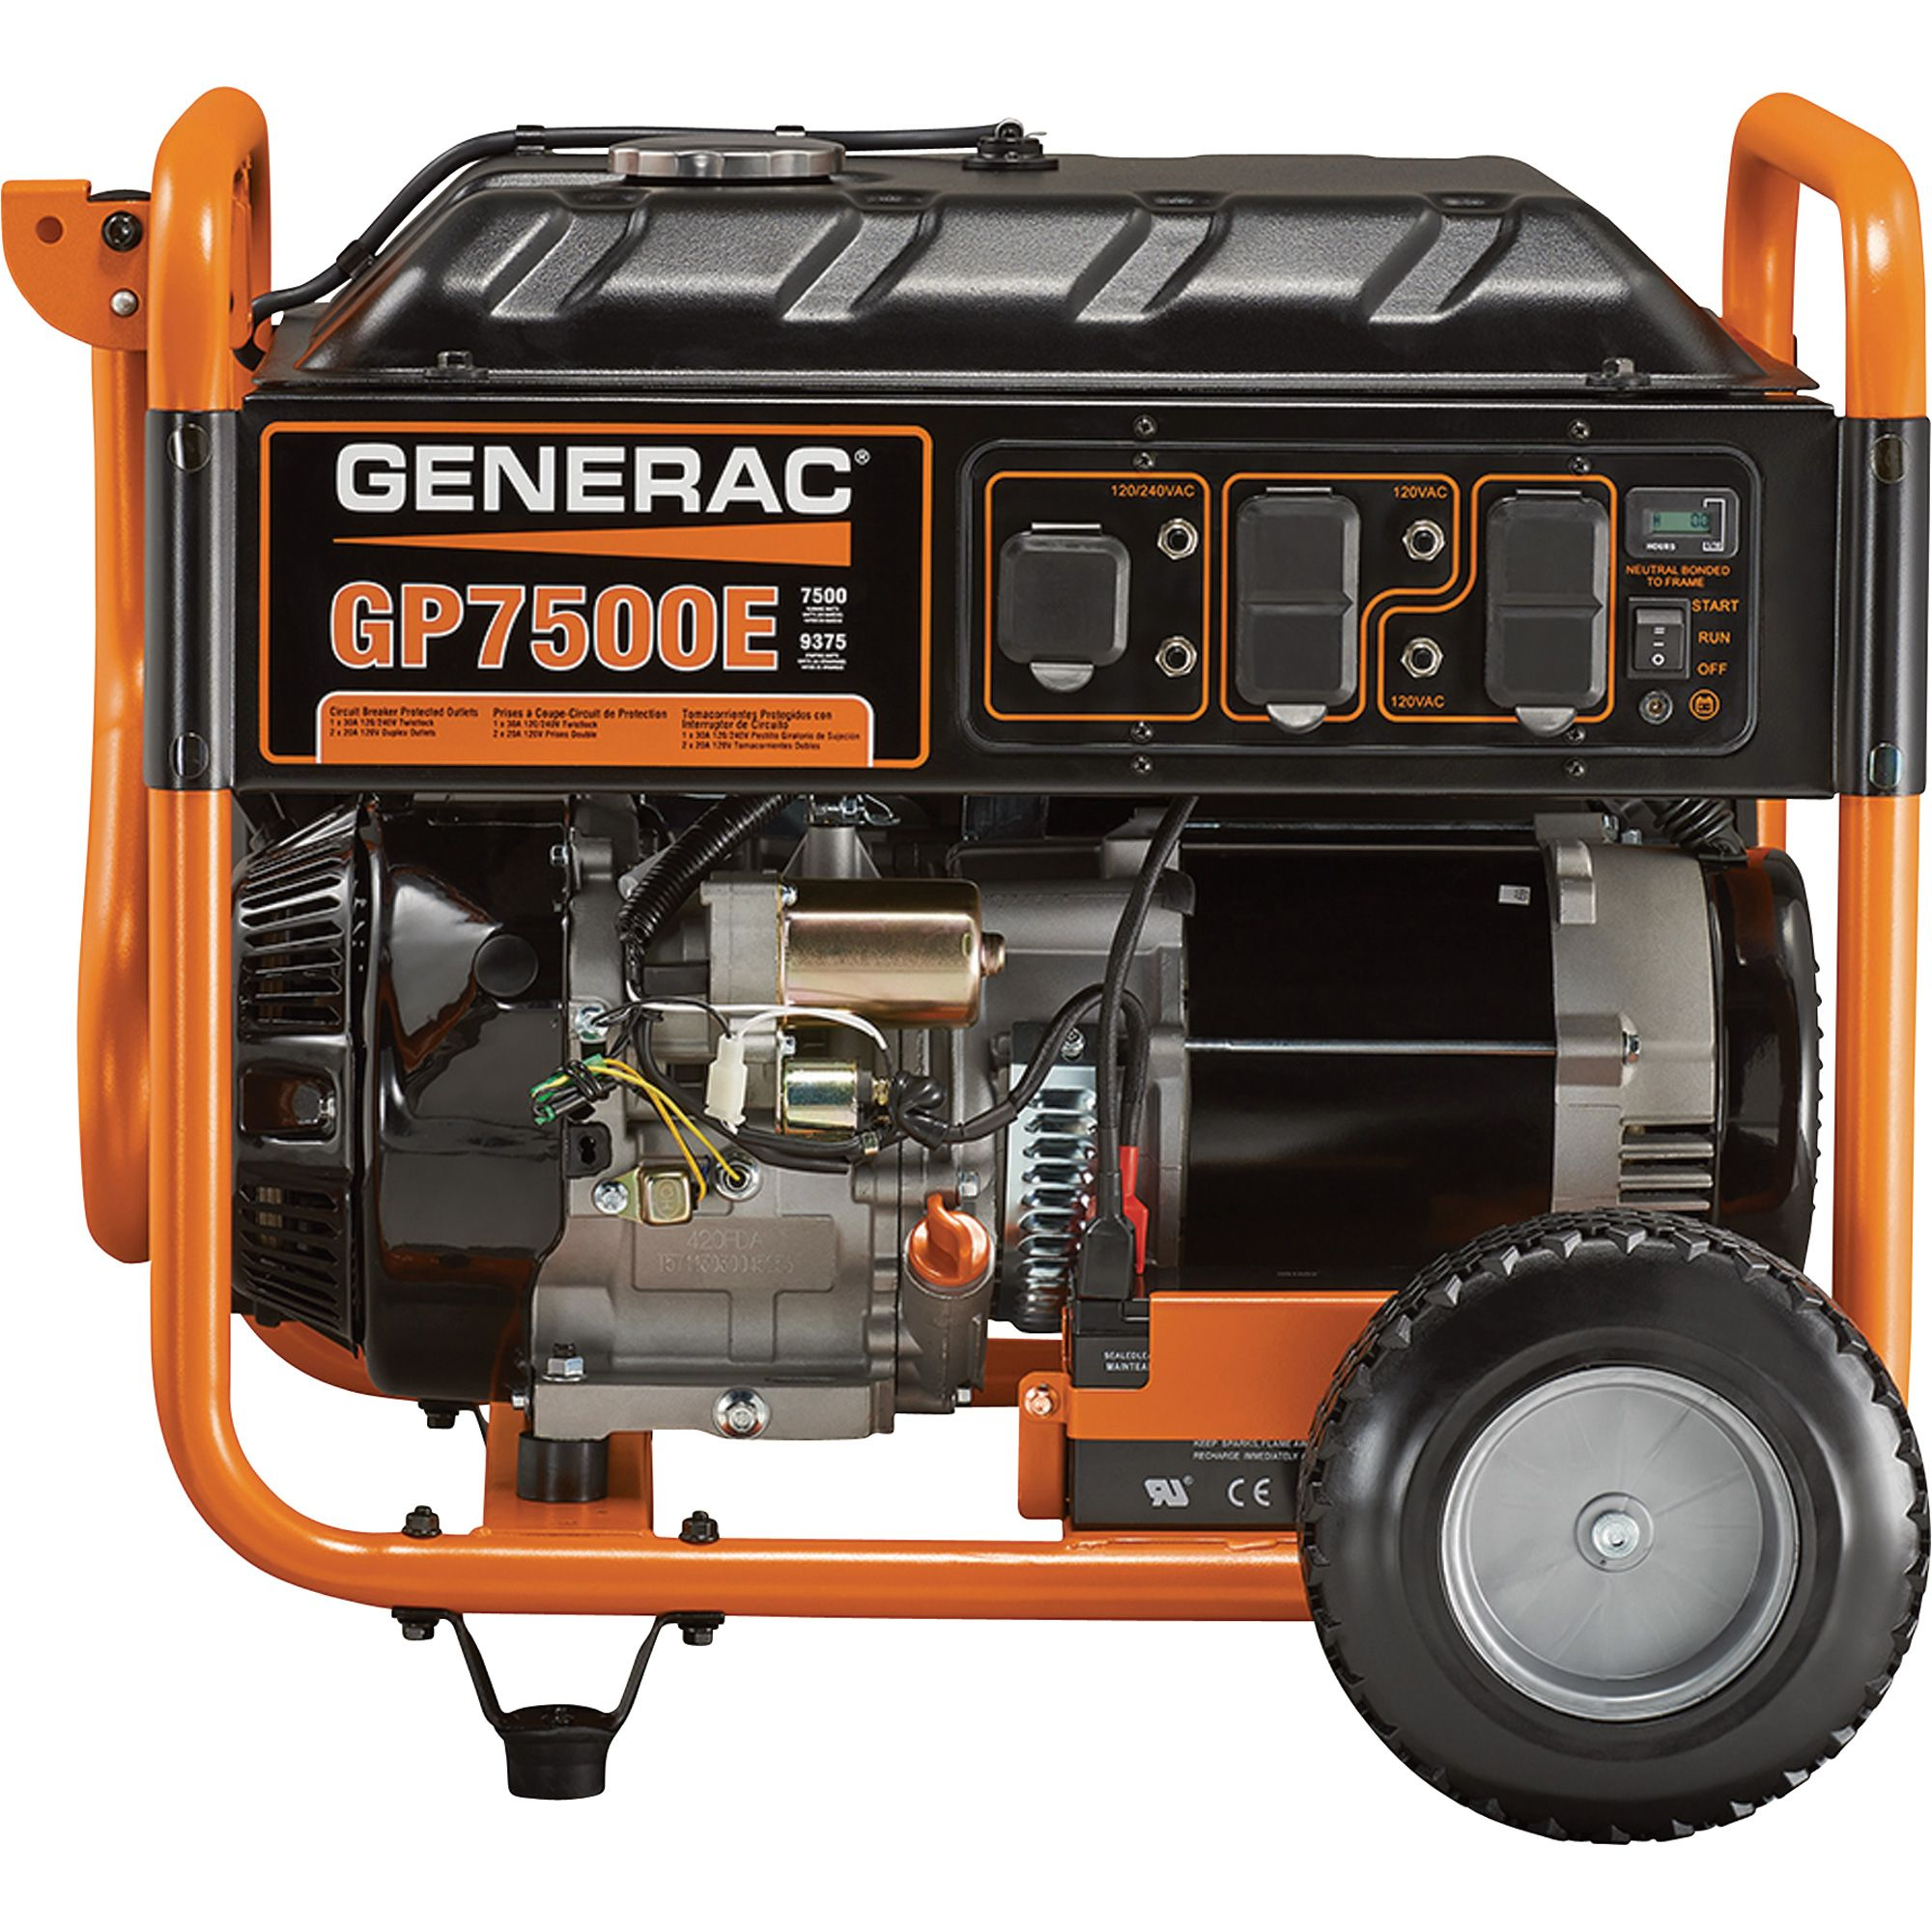 small resolution of this generac gp7500e portable generator is easy to use in a variety of applications and offers affordable reliability the 420cc generac ohv engine has